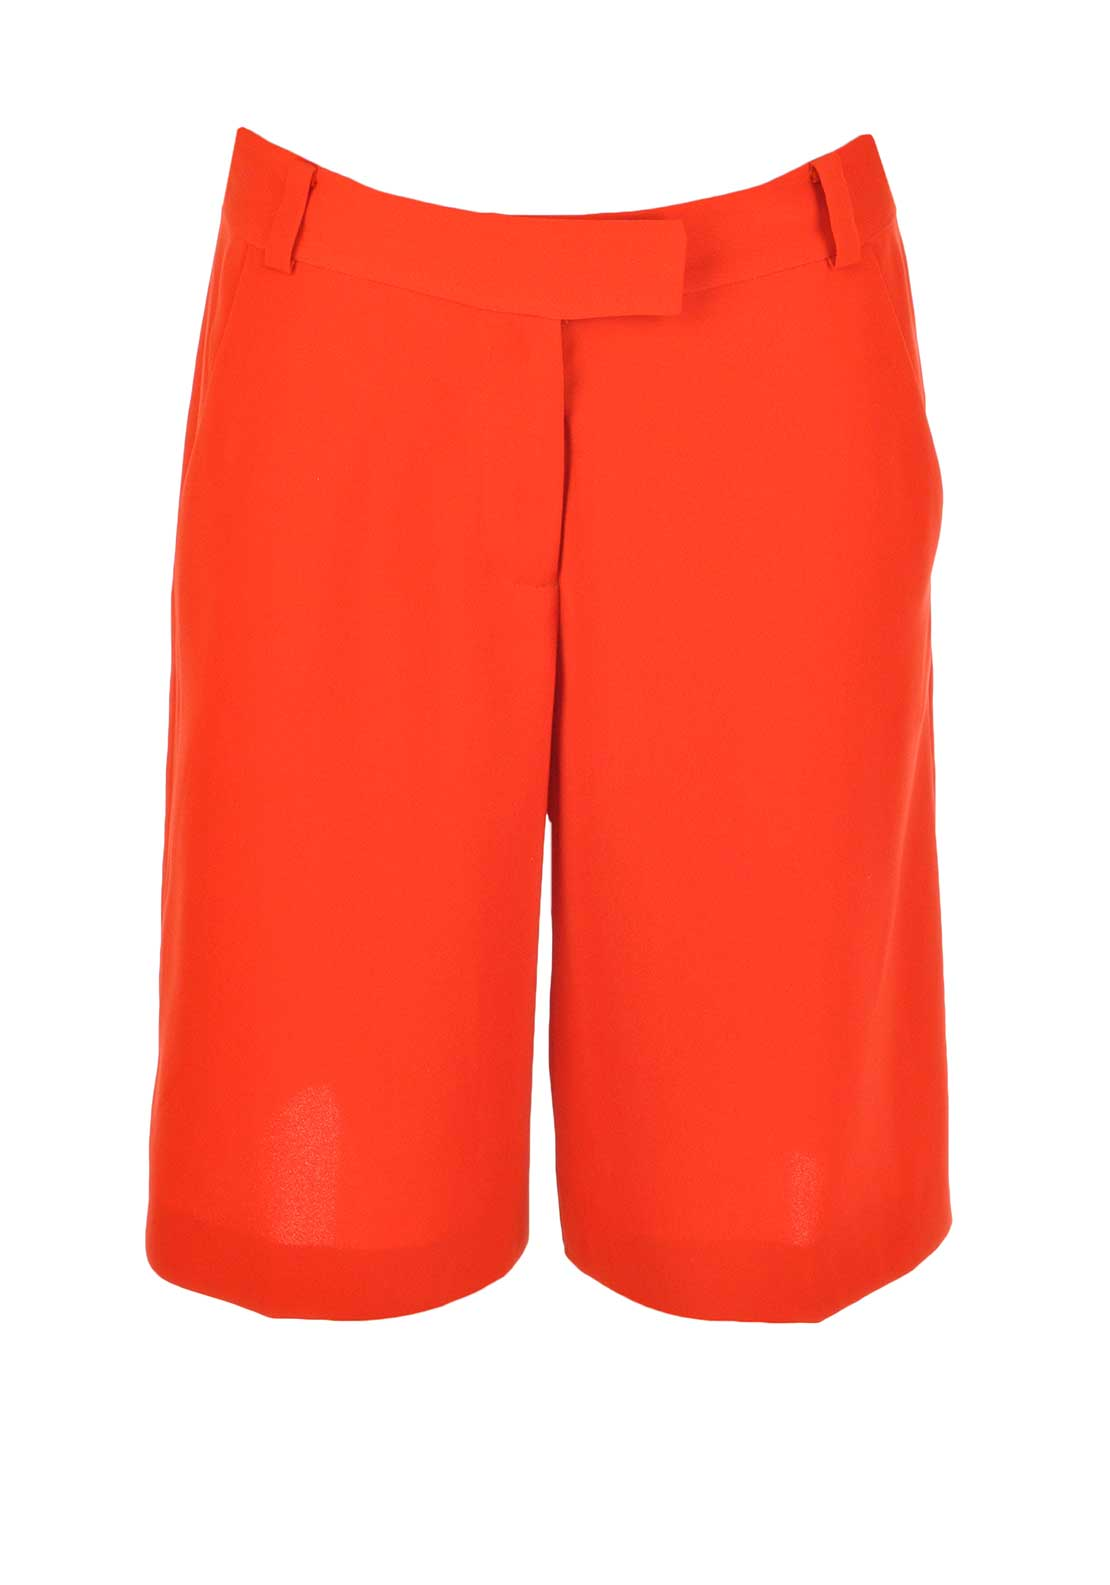 French Connection Womens Culotte Shorts, Masai Red